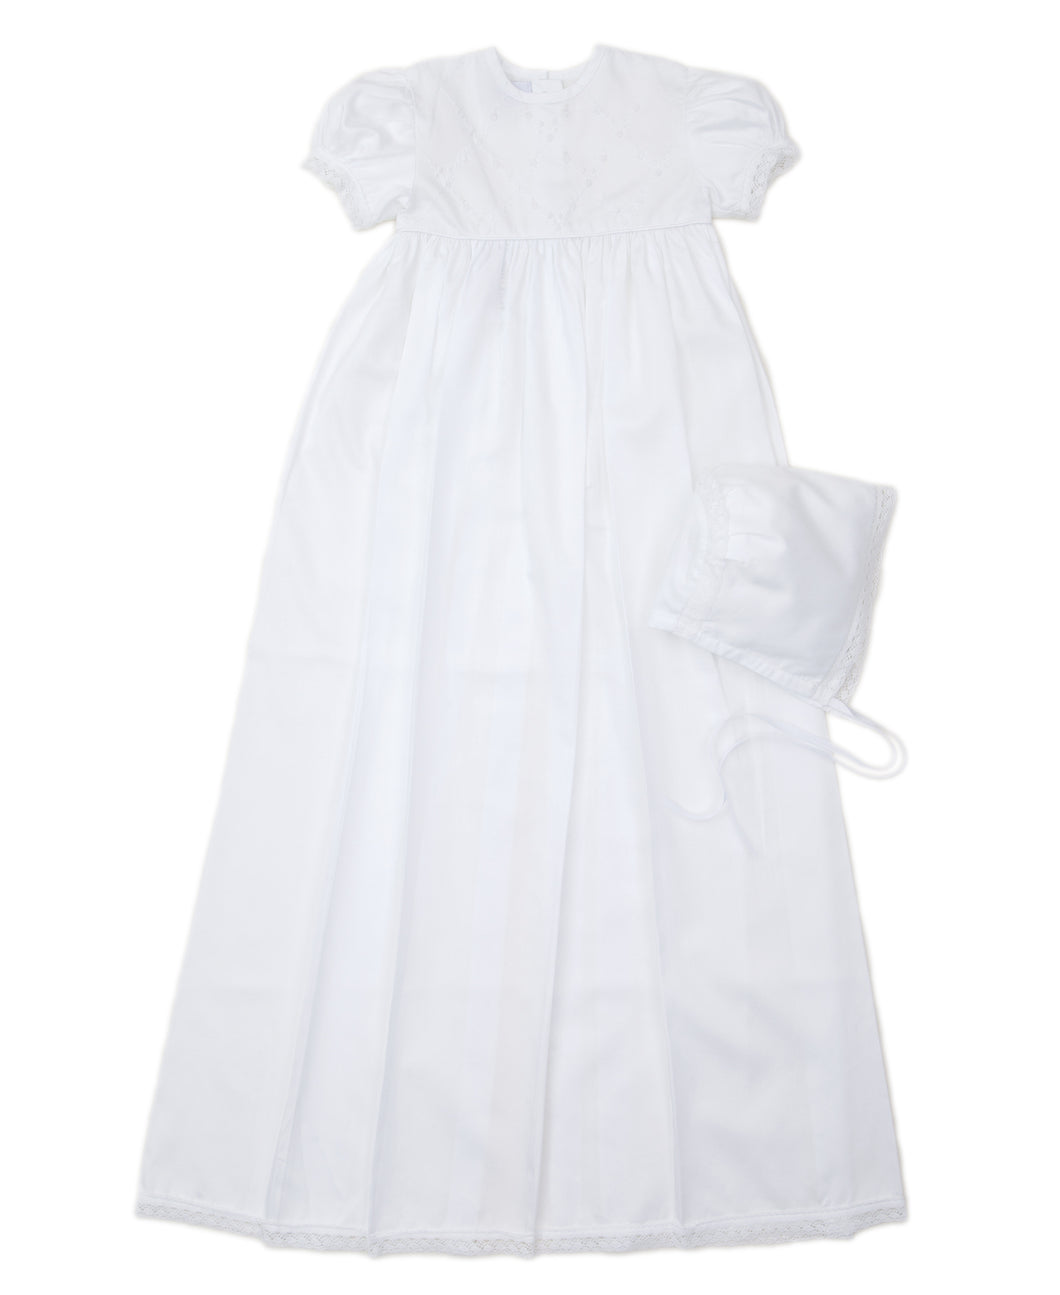 Annalise Short Sleeve Christening Gown And Hat Set